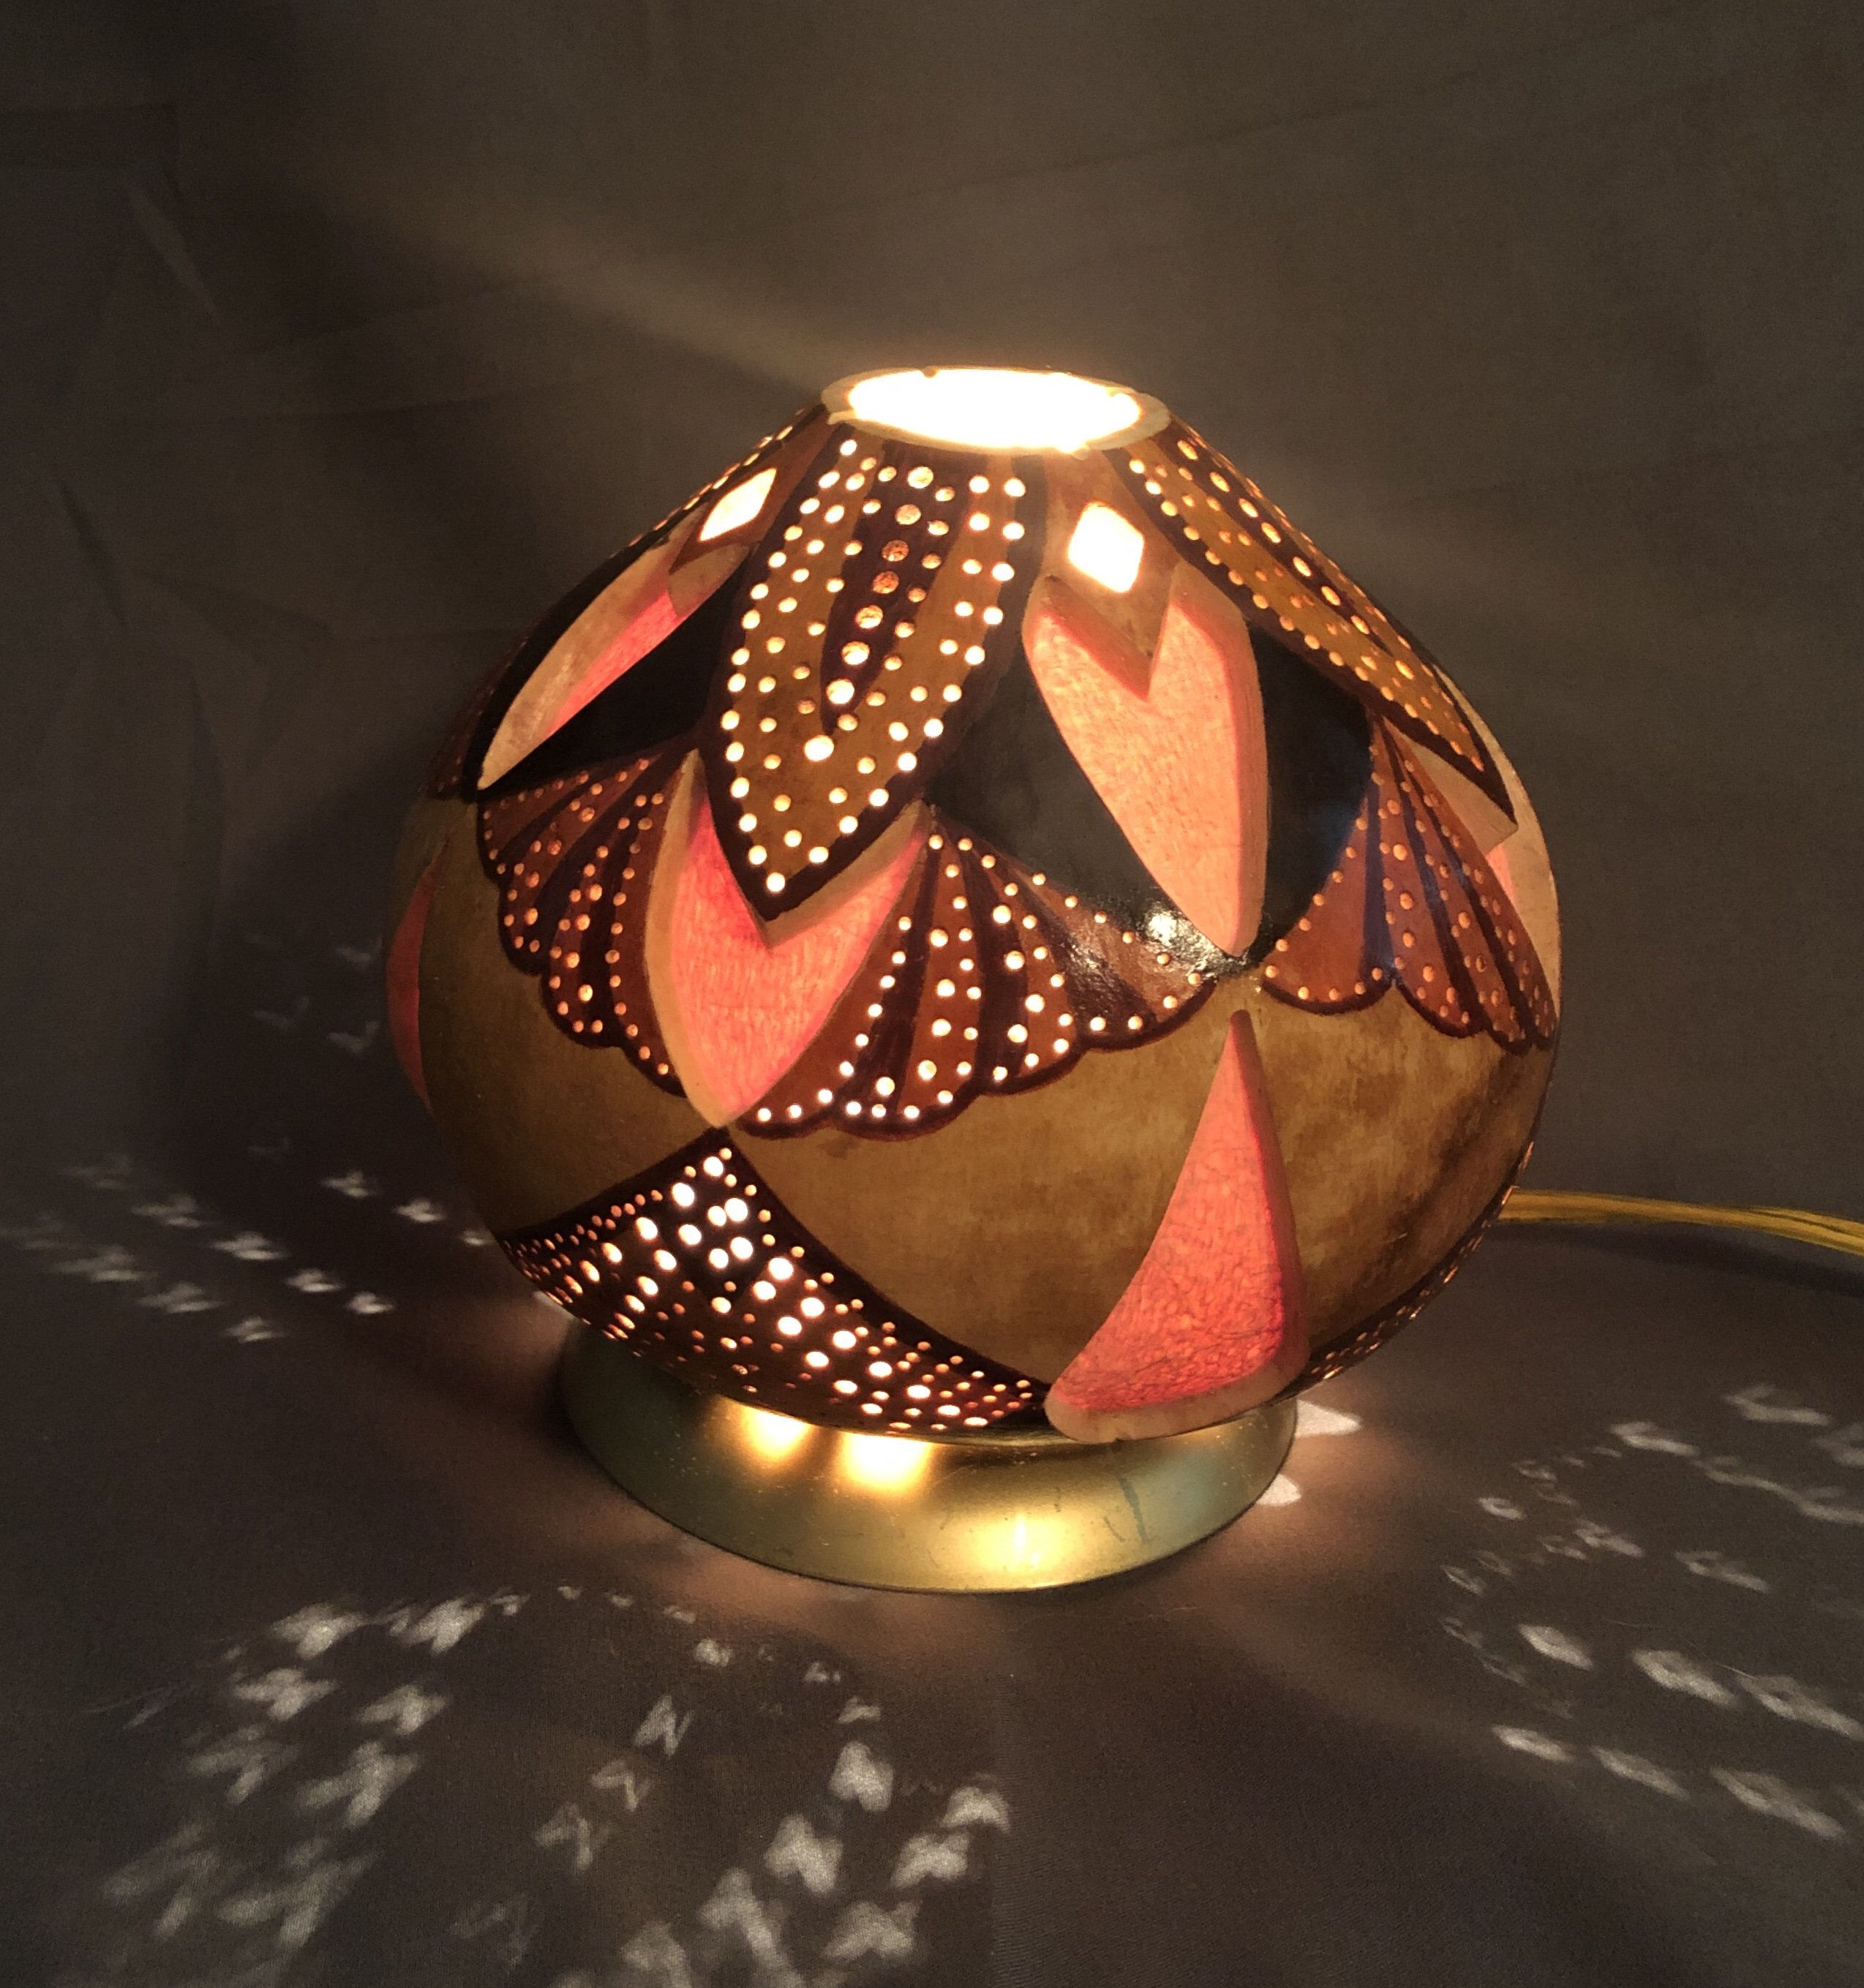 Gourd Night Light With Southwestern Design In A